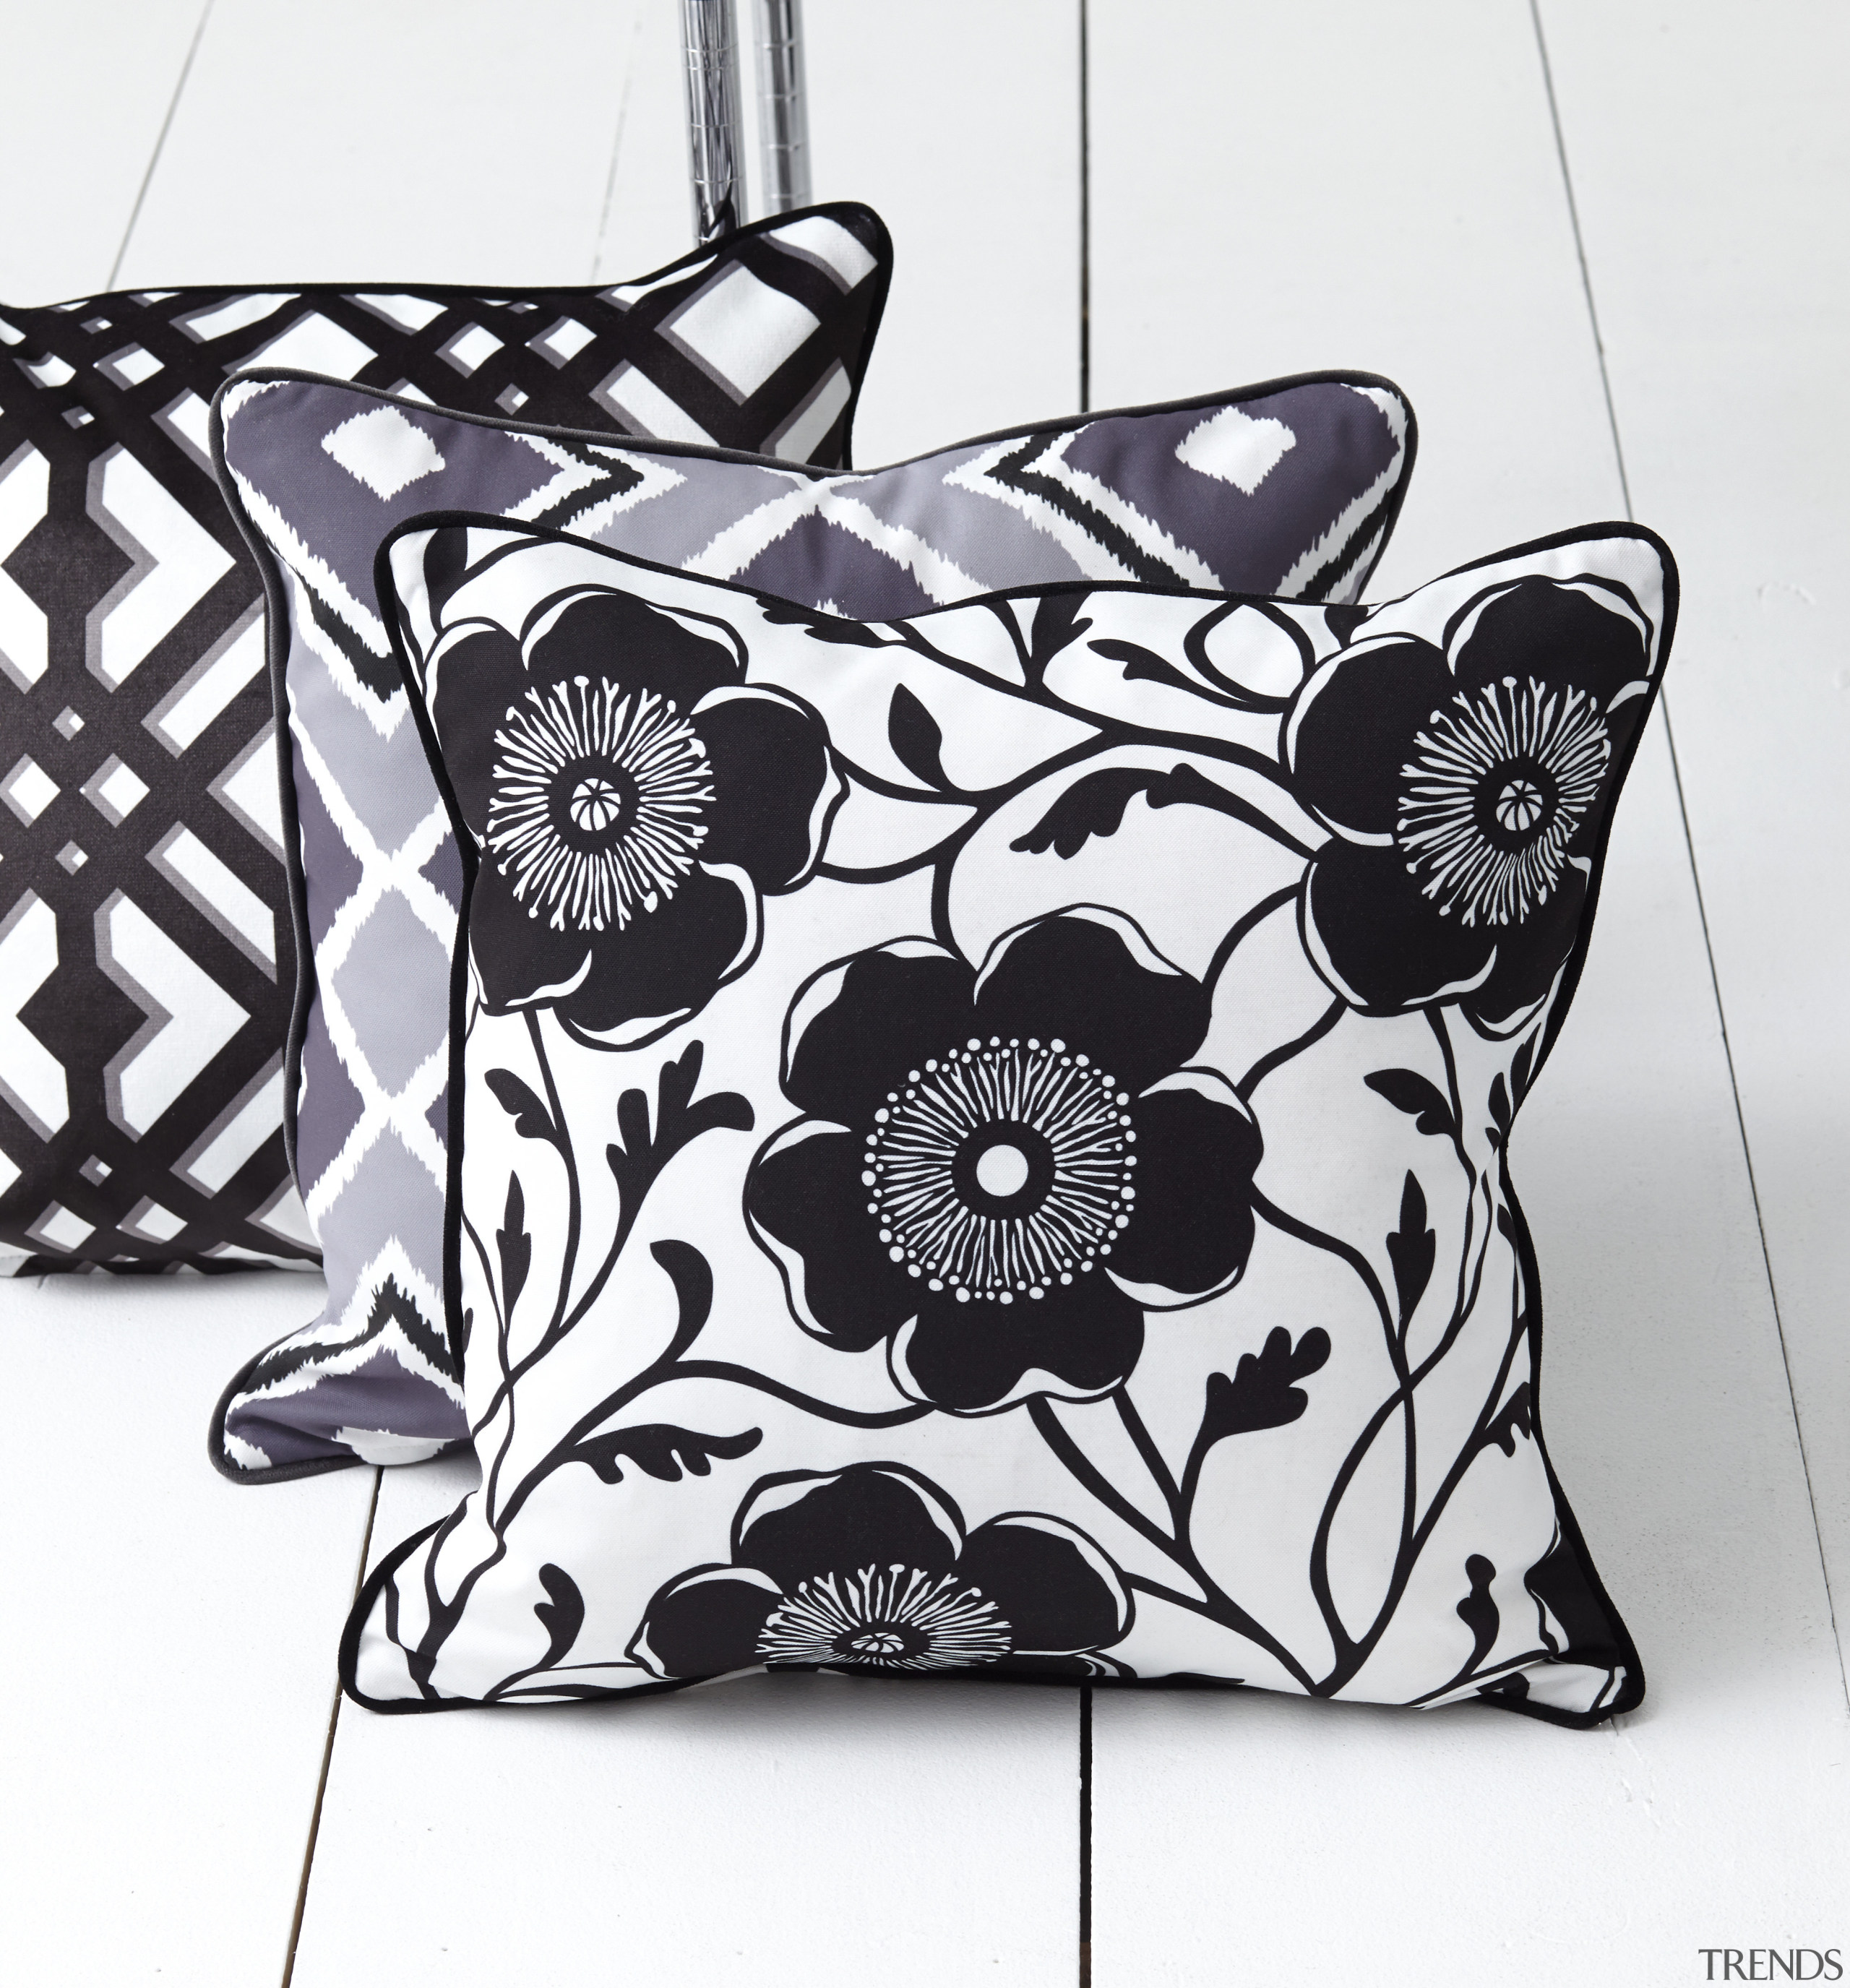 In modern commercial interiors, an eye-catching furnishing scheme black and white, cushion, design, font, monochrome, monochrome photography, pattern, product, throw pillow, white